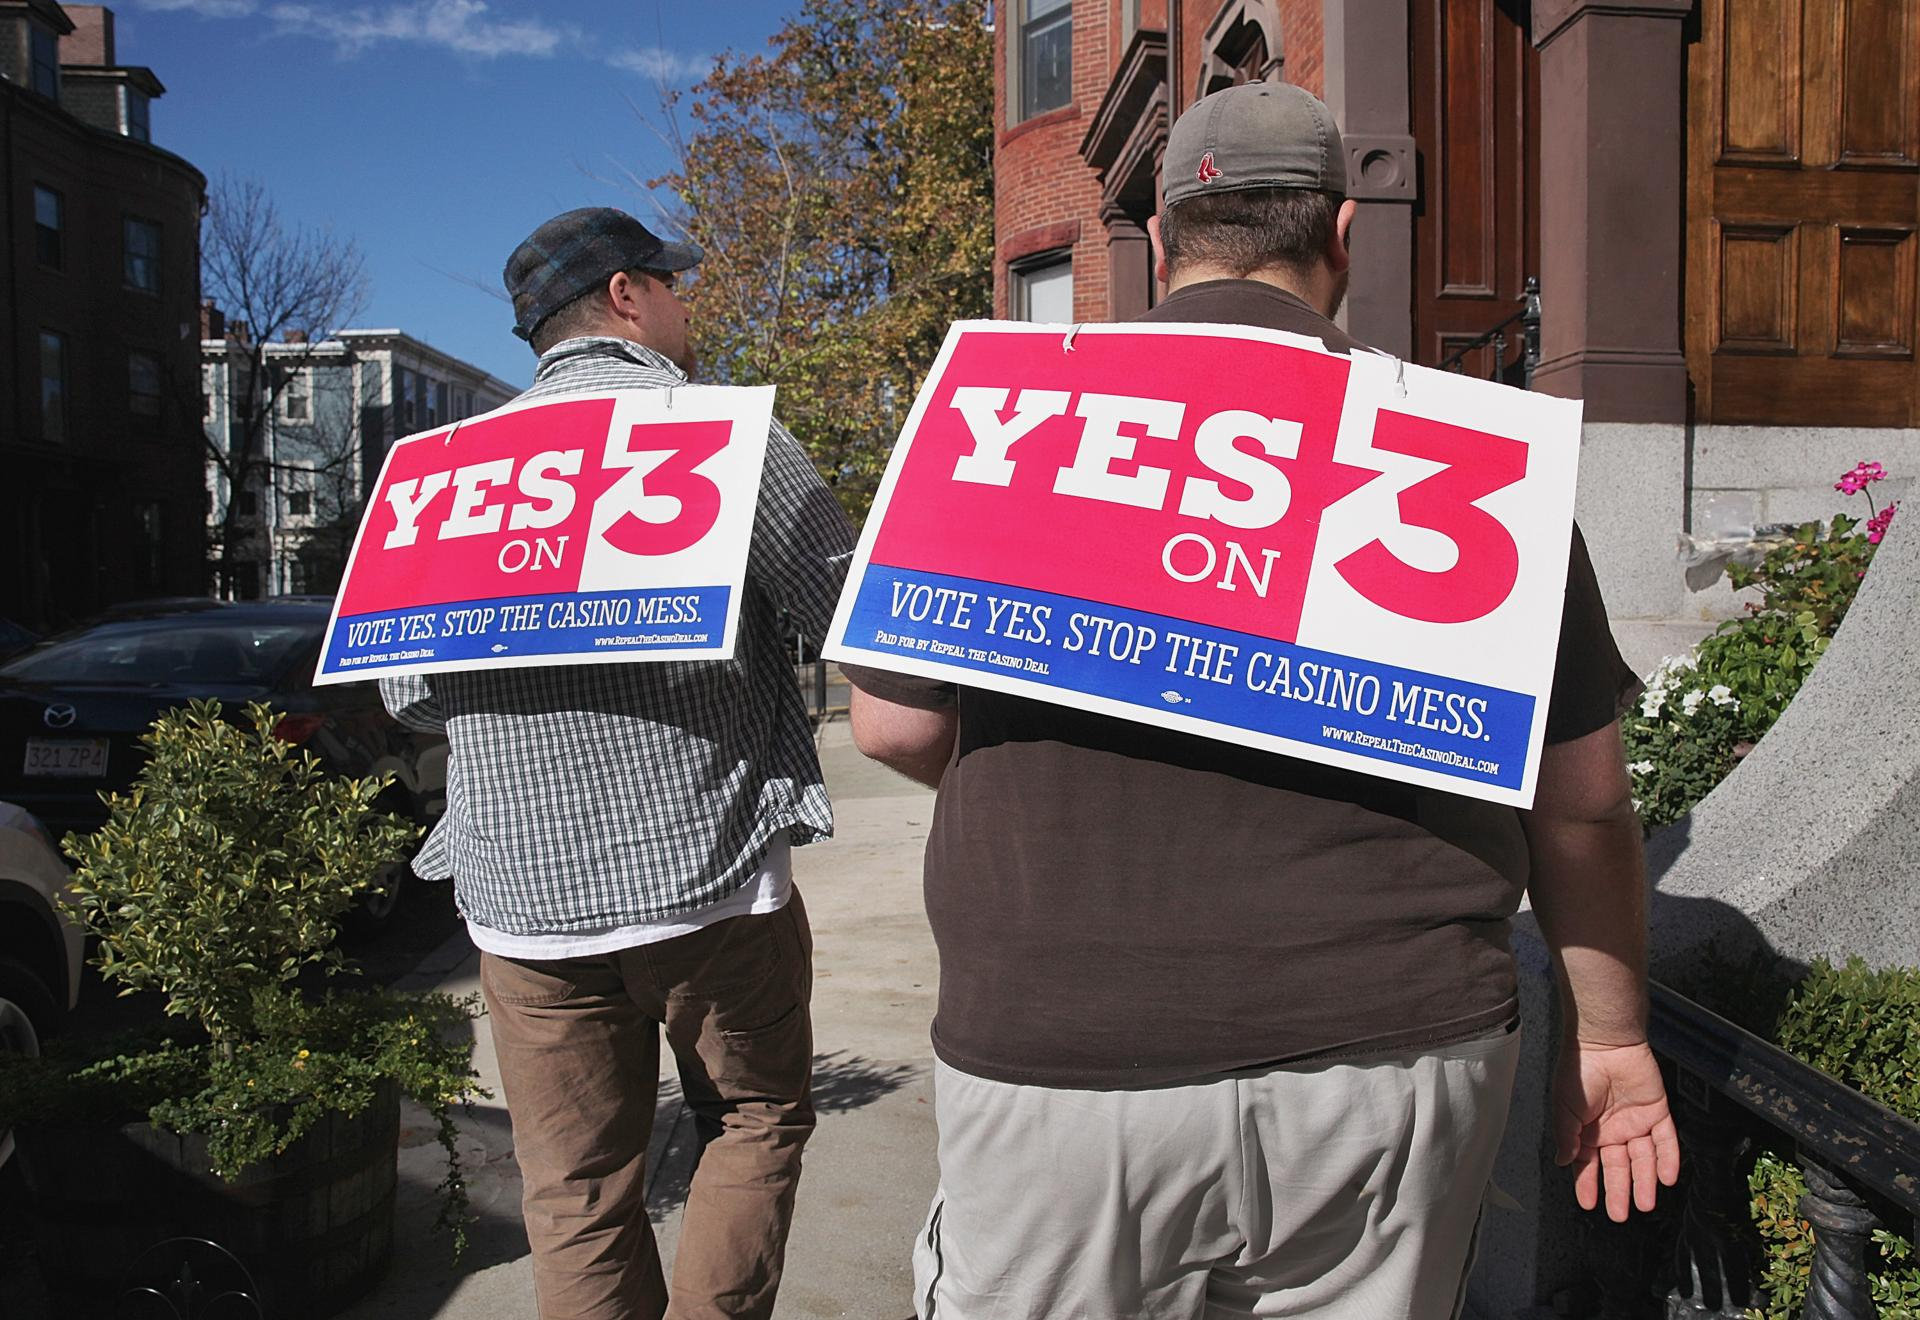 Boston, MA 102514 Anti casino volunteers John Rogers (cq), left, of East Boston and Joseph Catricala (cq), rt, of Revere canvassed potential voters on High Street in Charlestown, Saturday, October 25 2014. (Wendy Maeda/Globe Staff) section: Metro slug: 29casinogroundgame reporter: Laura Crimaldi